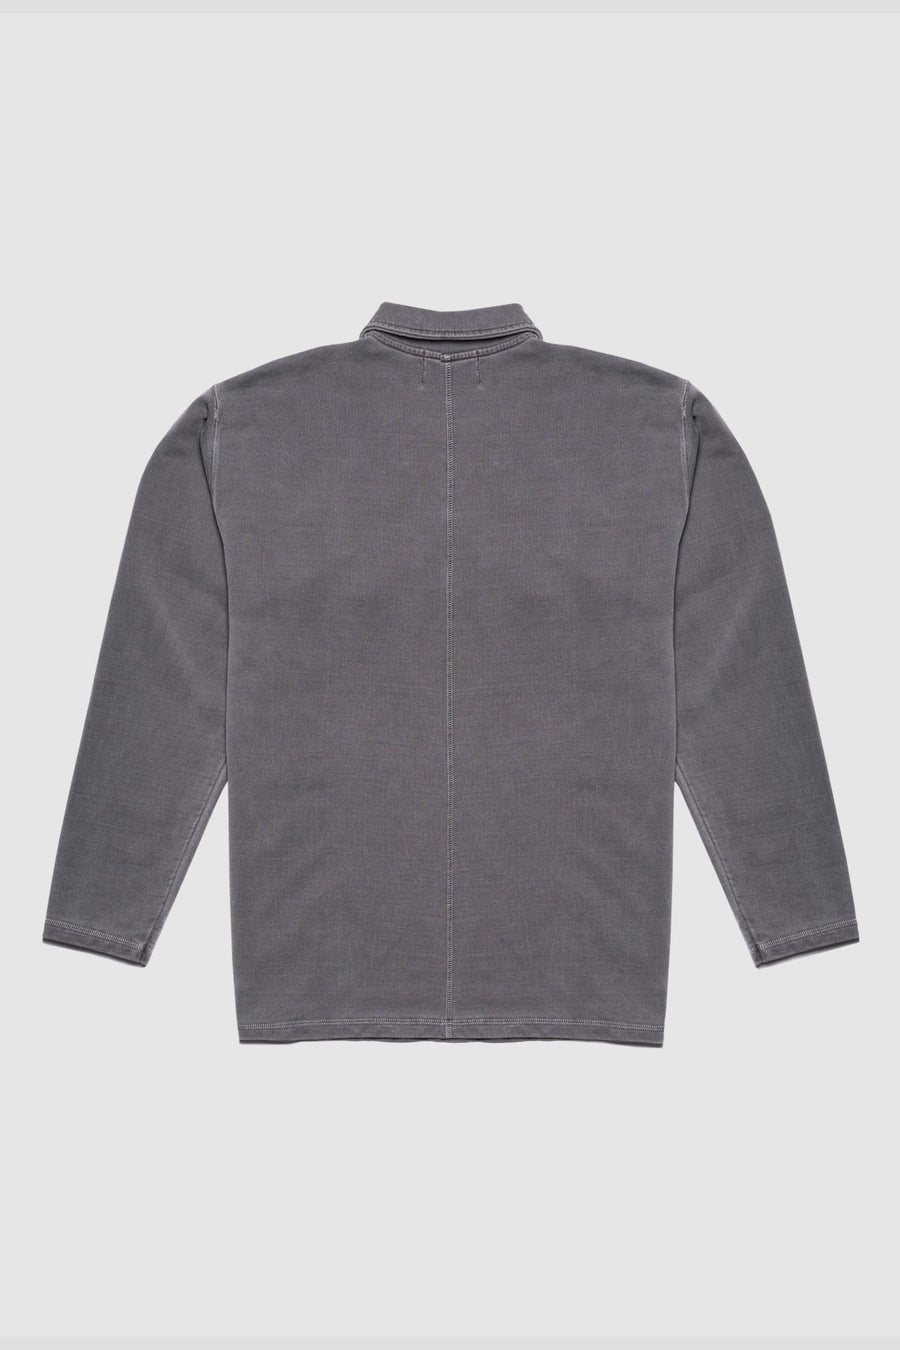 LEISURE QUARTER ZIP CREW